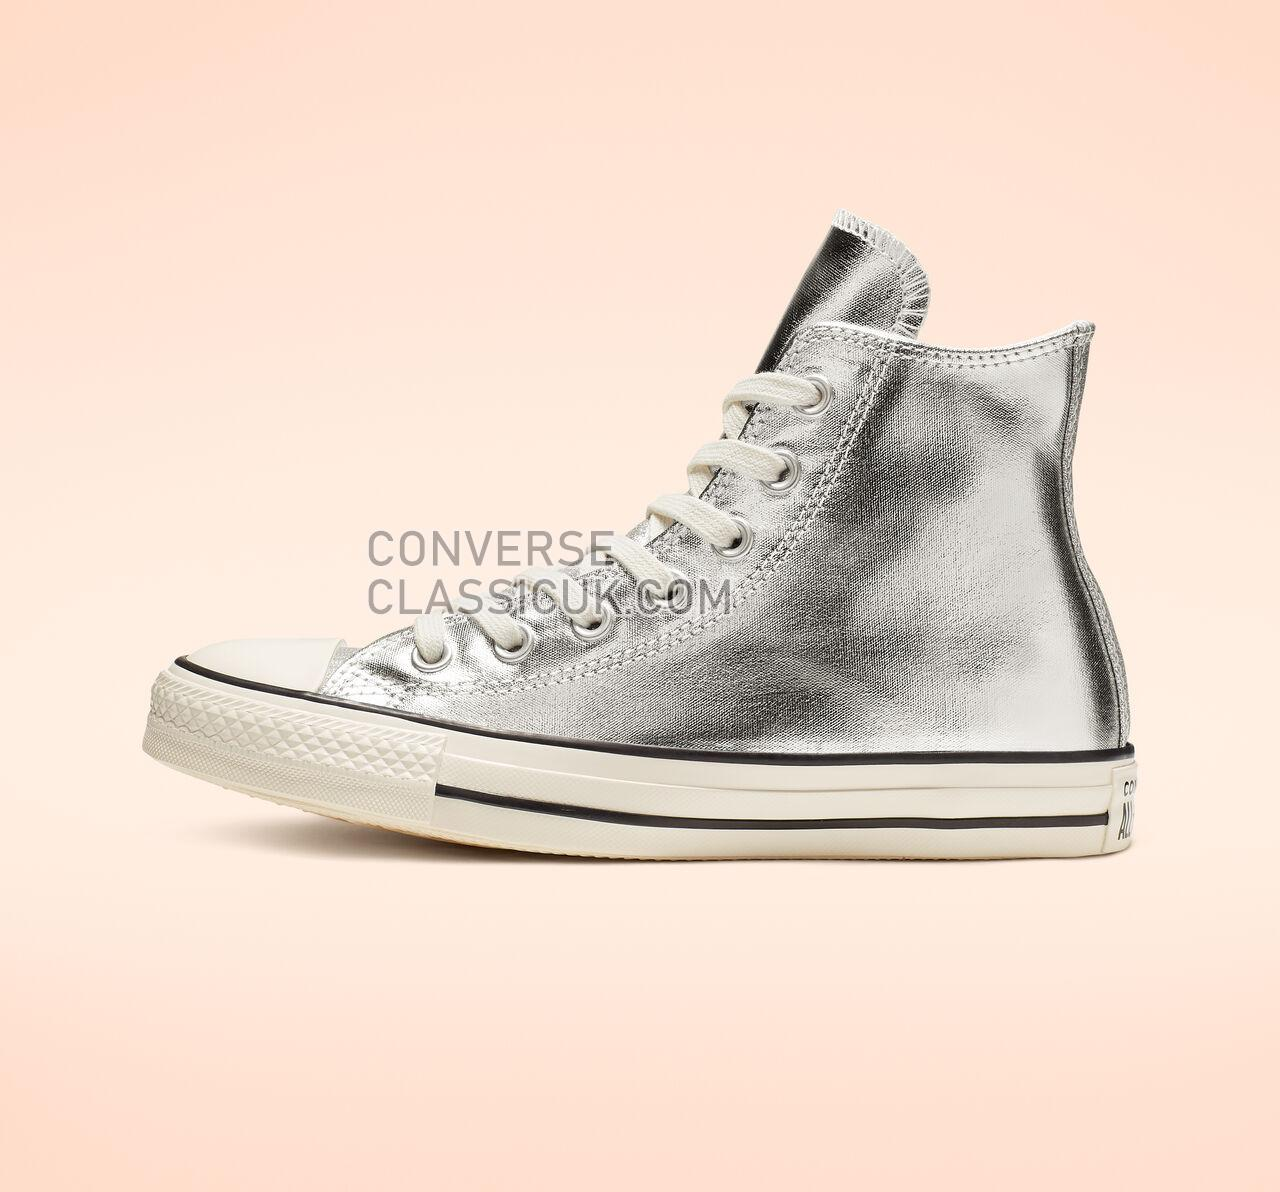 Converse Chuck Taylor All Star Shiny Metal High Top Womens 564869C Silver/Egret/Black Shoes